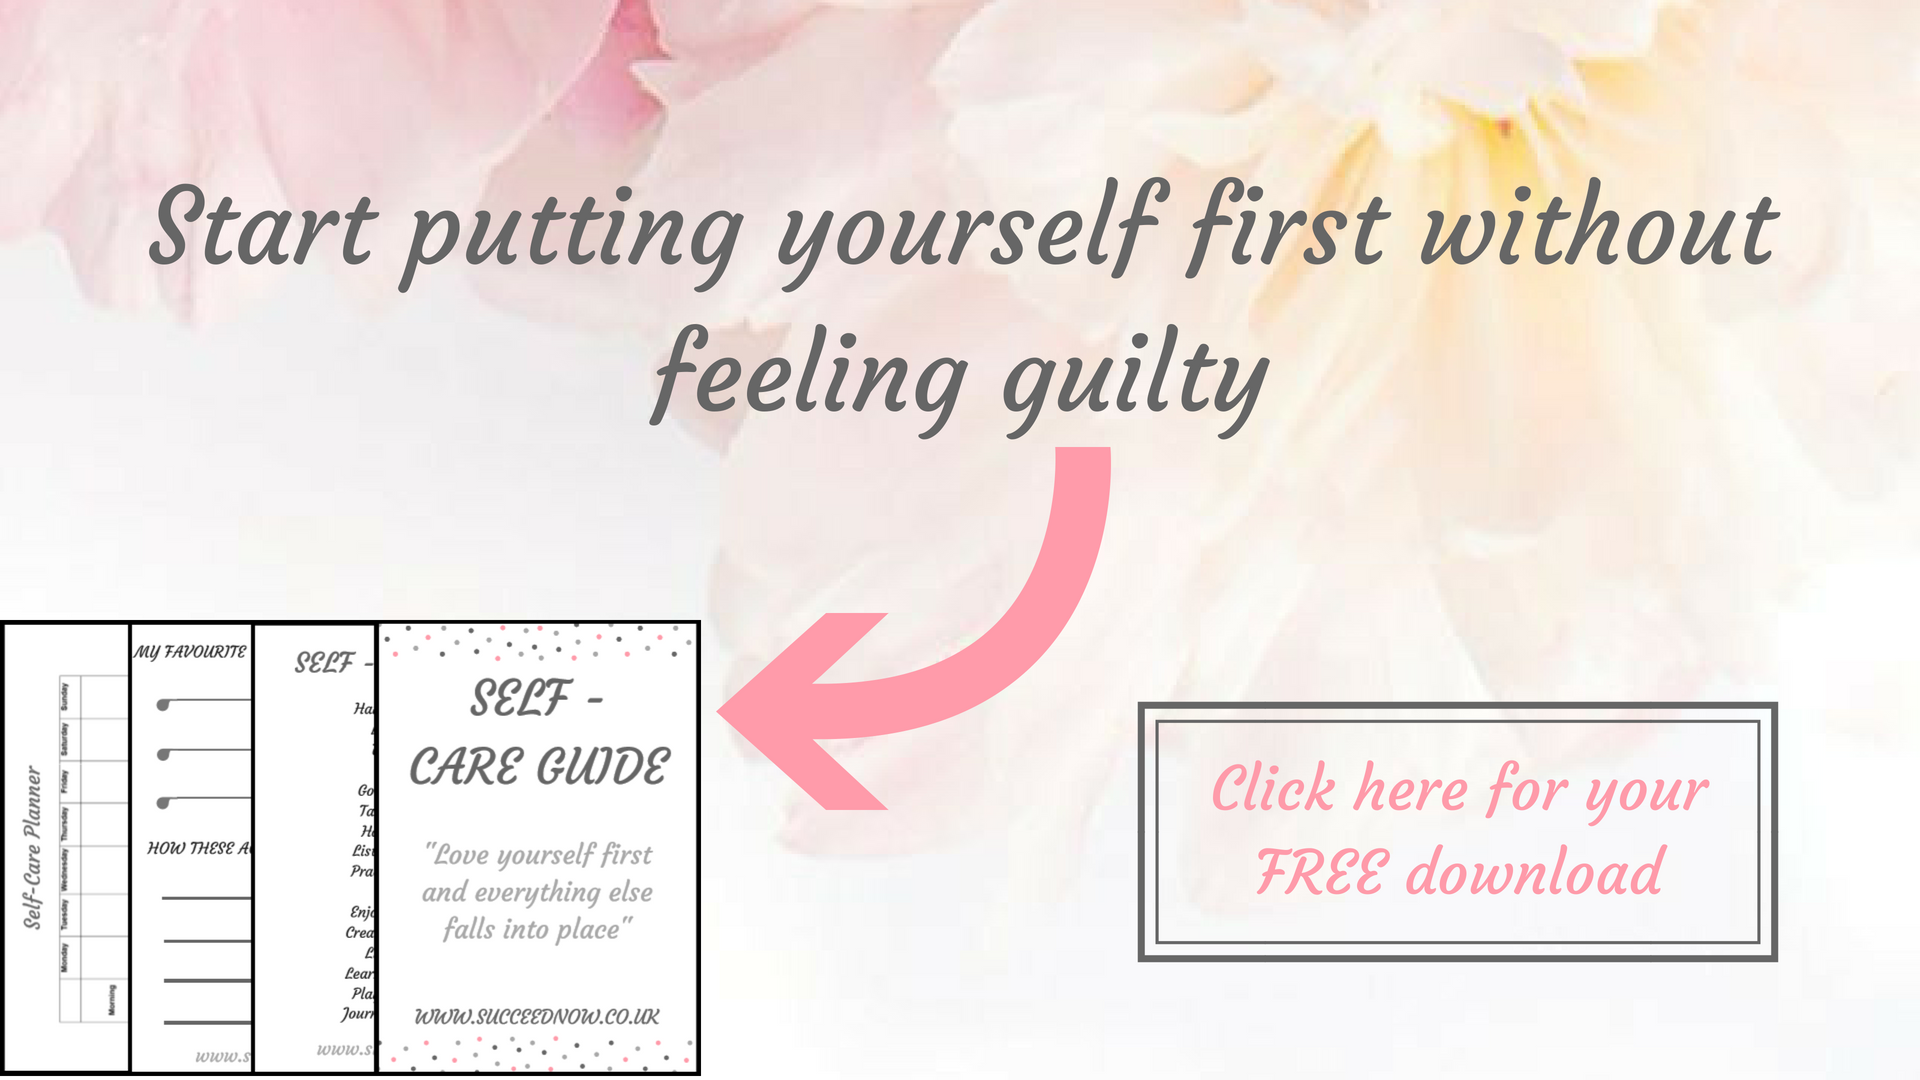 Click here for your free self-care guide to start putting yourself first without feeling guilty